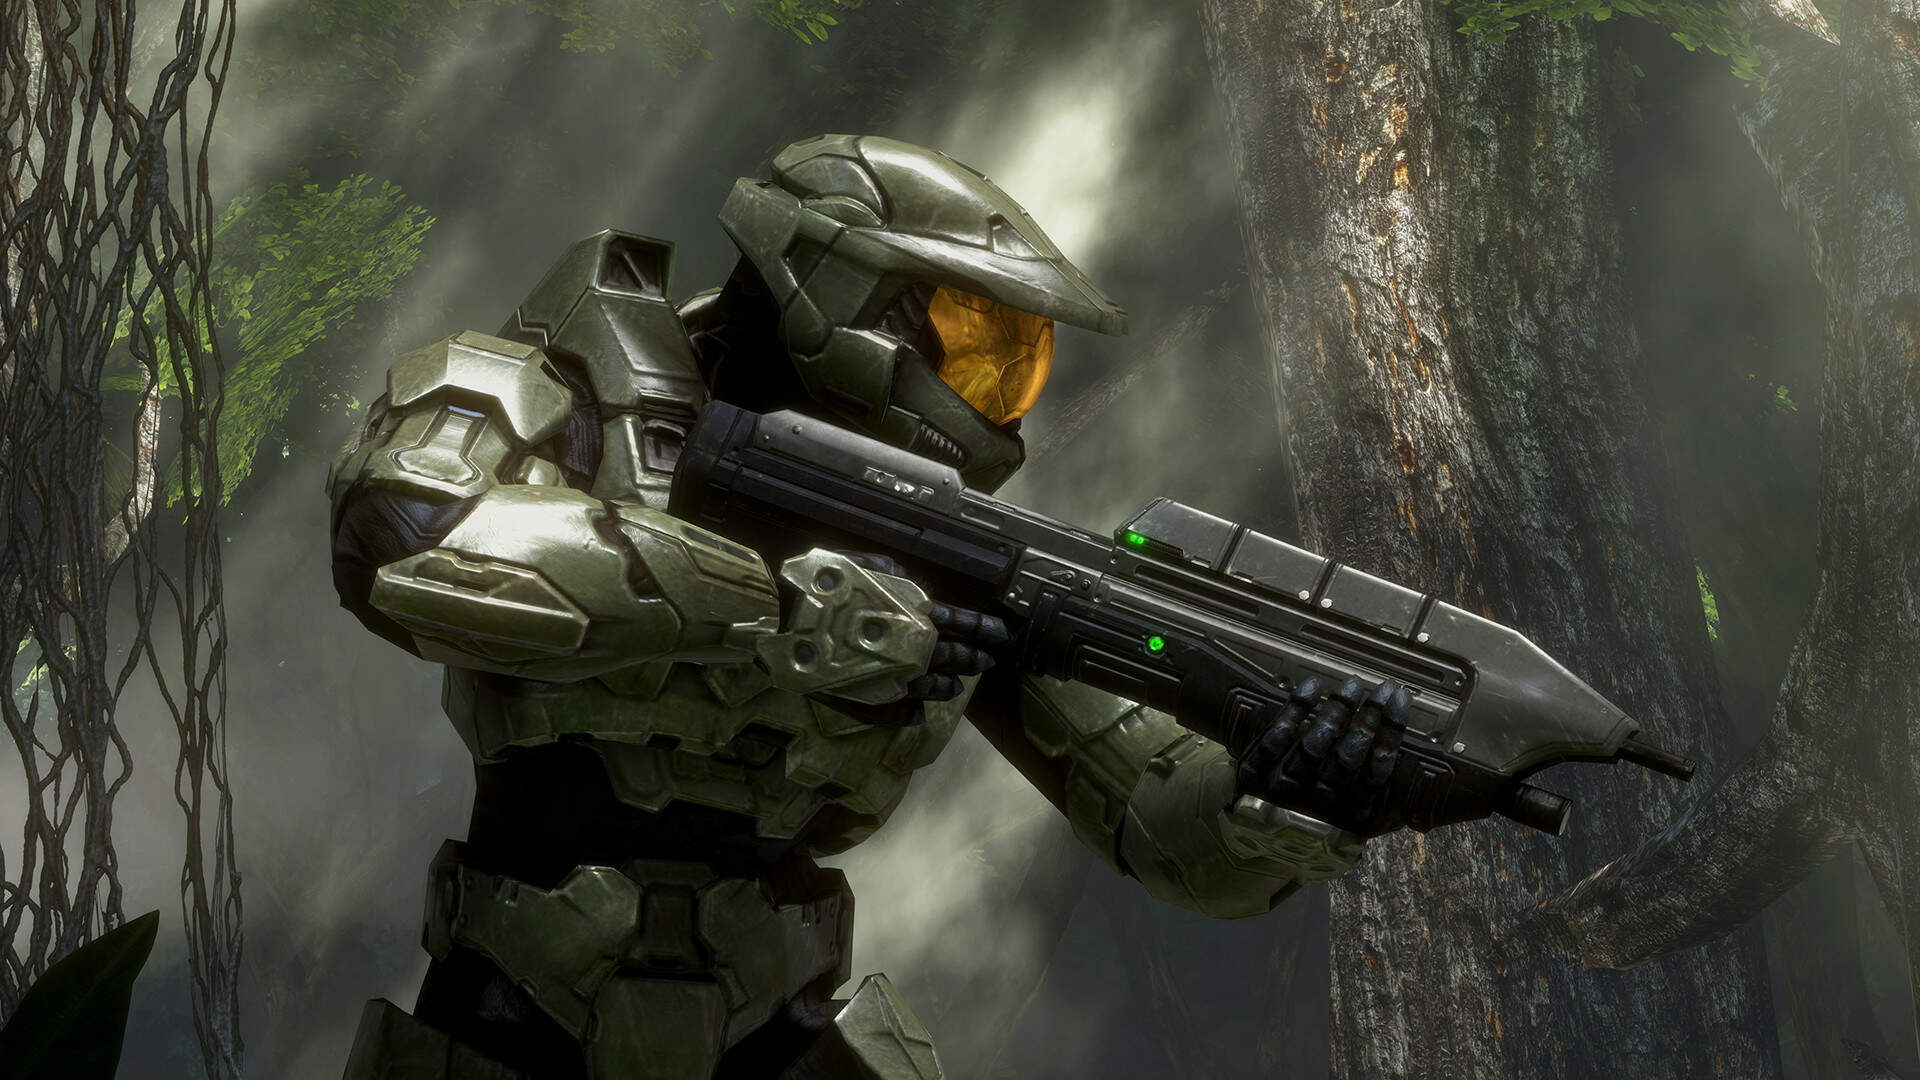 Halo 3 Rounds Out the Trilogy on PC Next Week